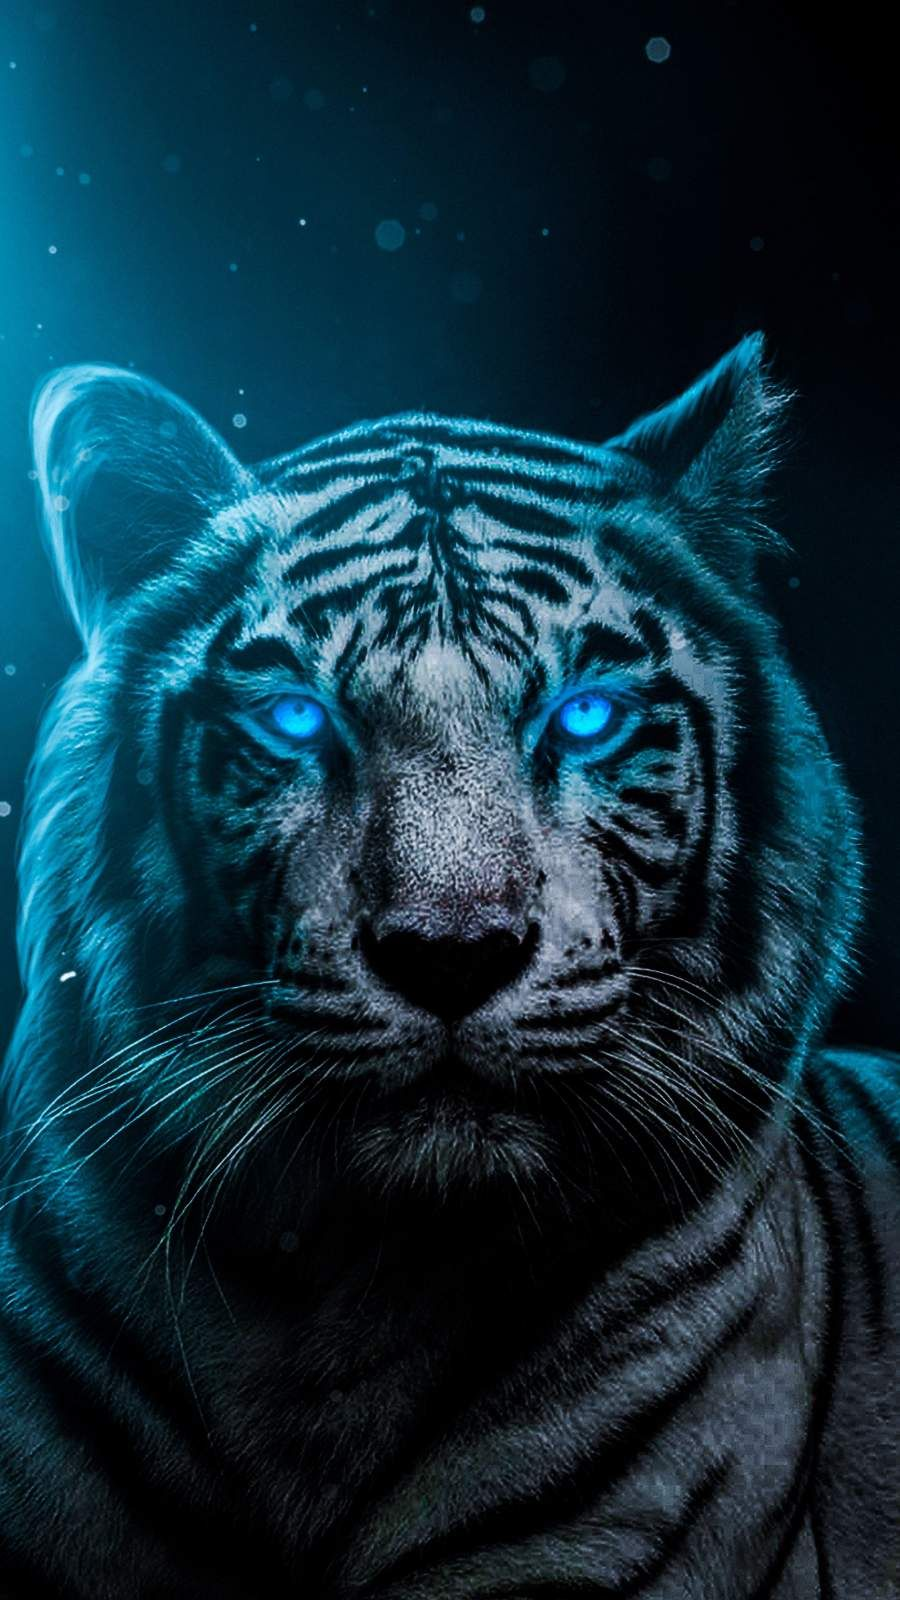 Blue Eyes Lion Iphone Wallpaper Tiger Wallpaper Tiger Spirit